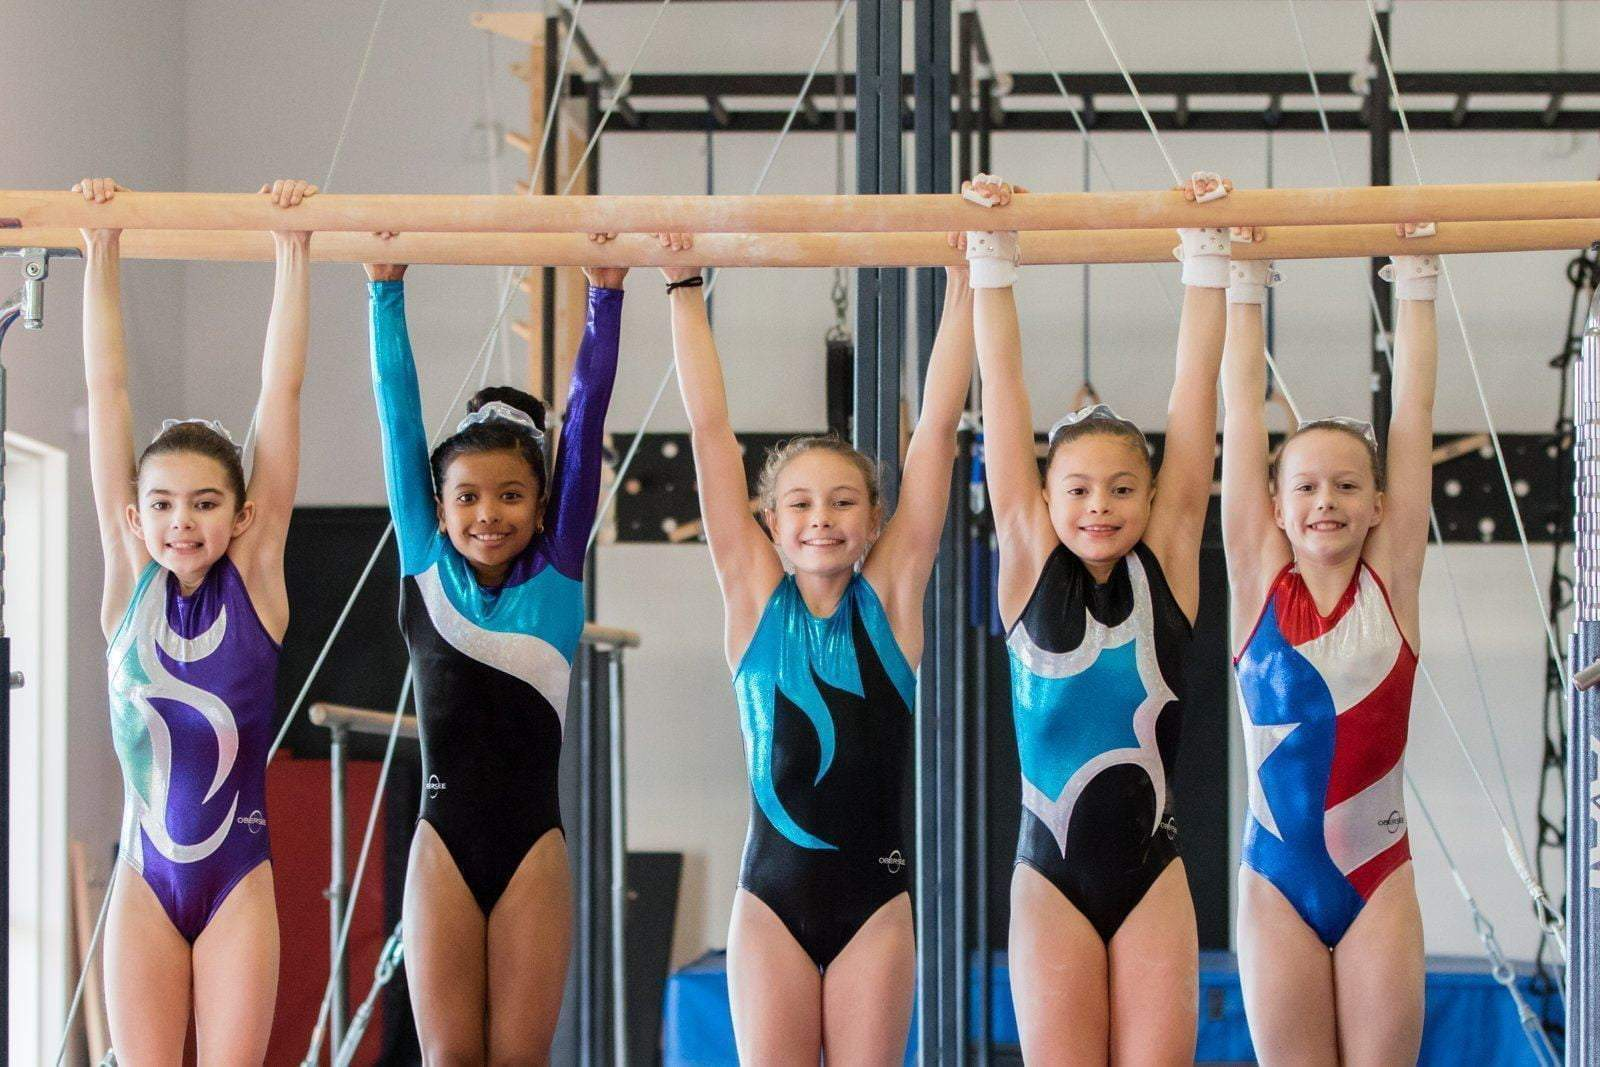 Obersee Girls Gymnastics Leotards